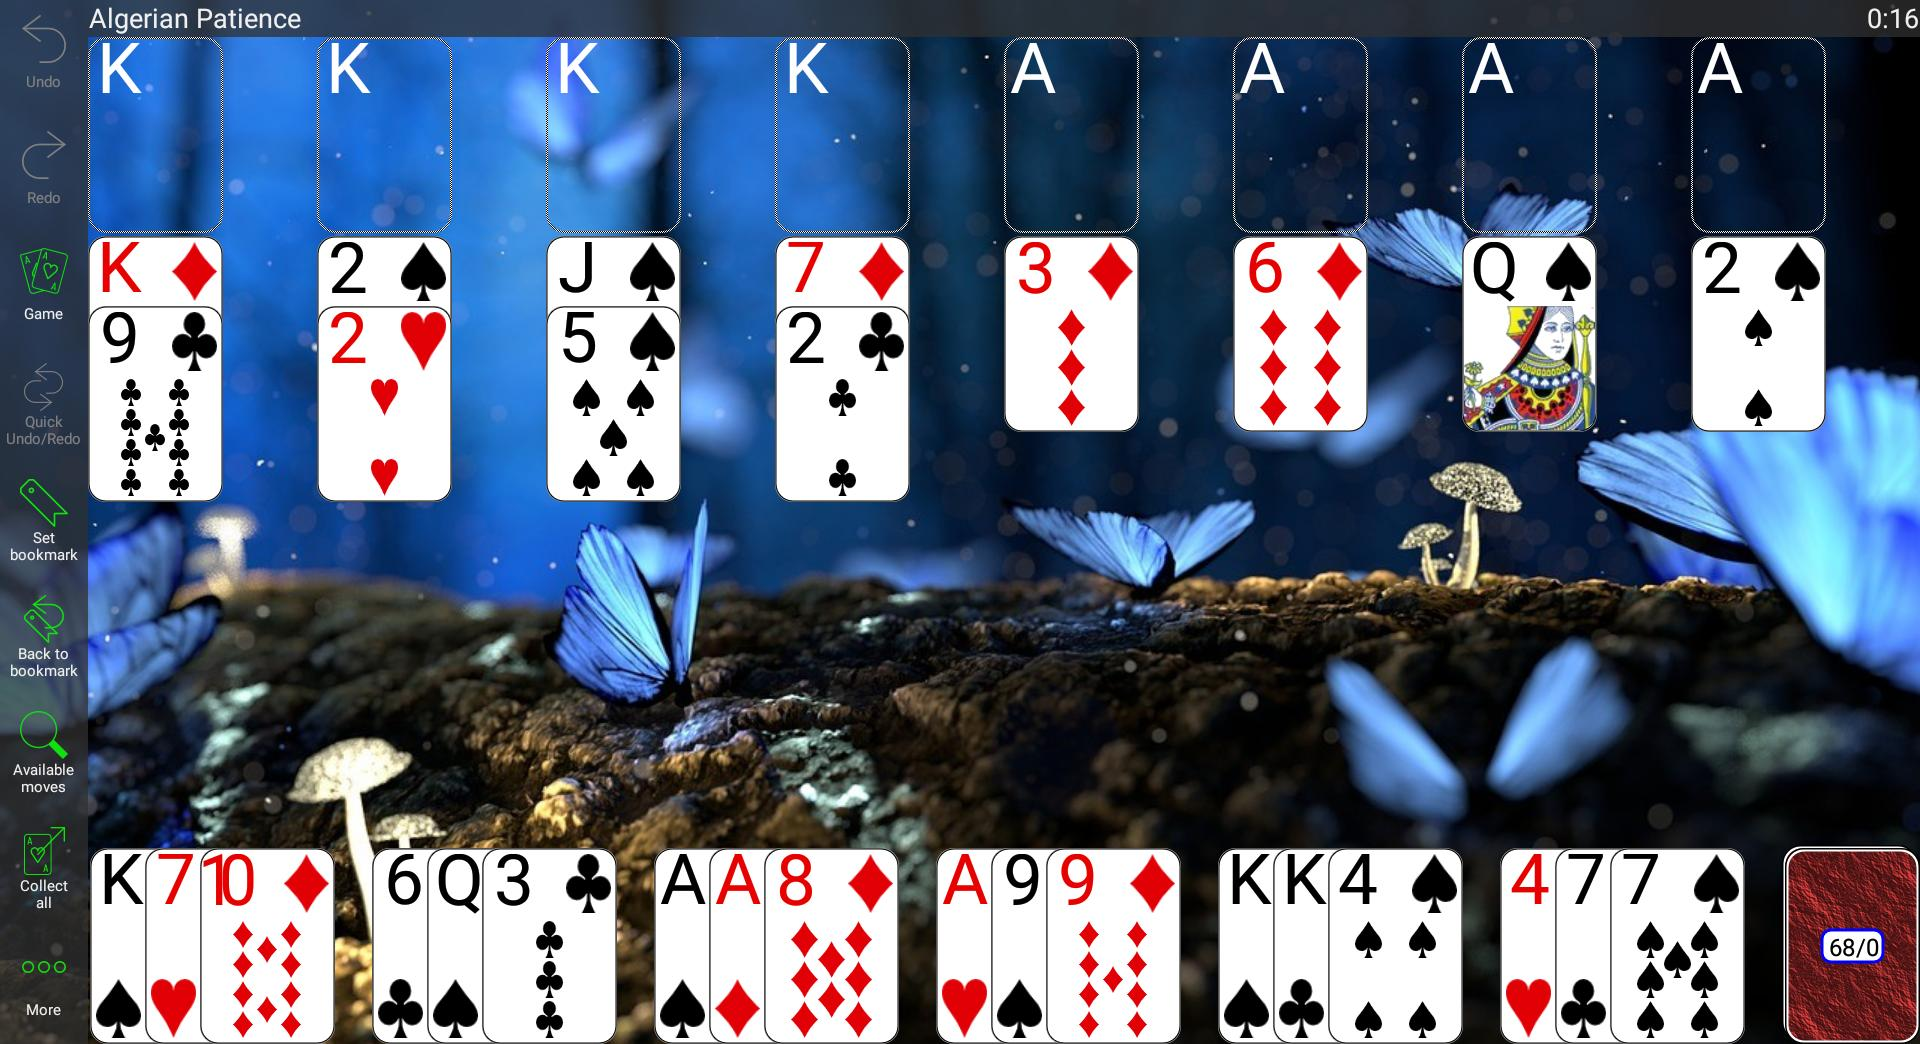 250+ Solitaire Collection 4.15.10 Screenshot 10